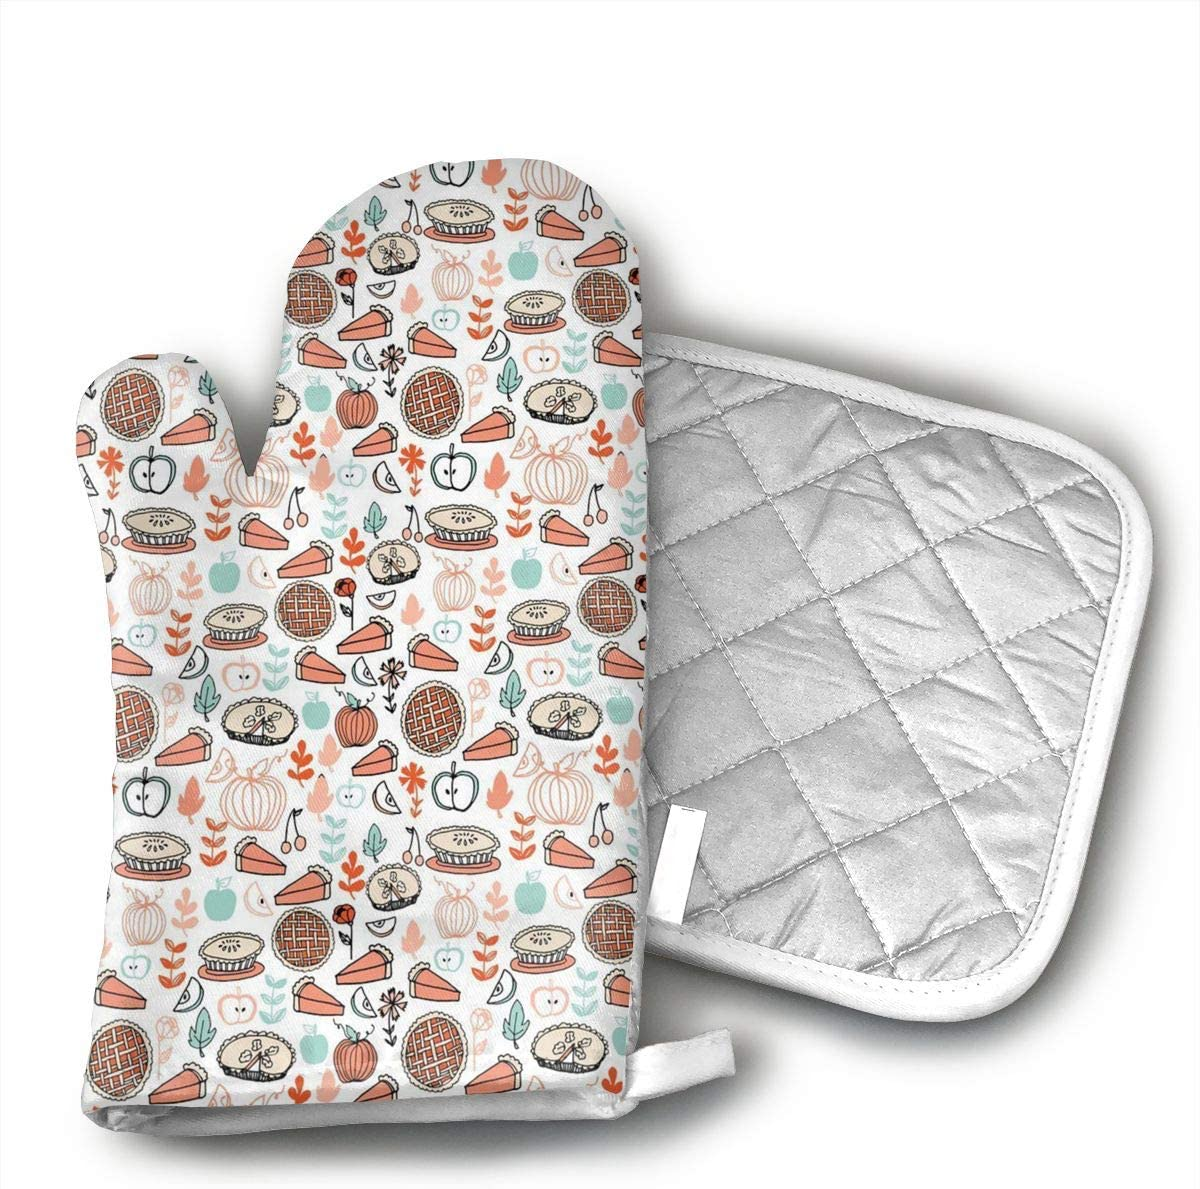 CUUOP13 Baking Food Pies Kitchen Pumpkin Heat Resistant Kitchen Oven Mitt with Non-Slip Silicone Printed,Oven Gloves for BBQ Cooking Baking,Grilling,Barbecue,Microwave,Machine Washable.